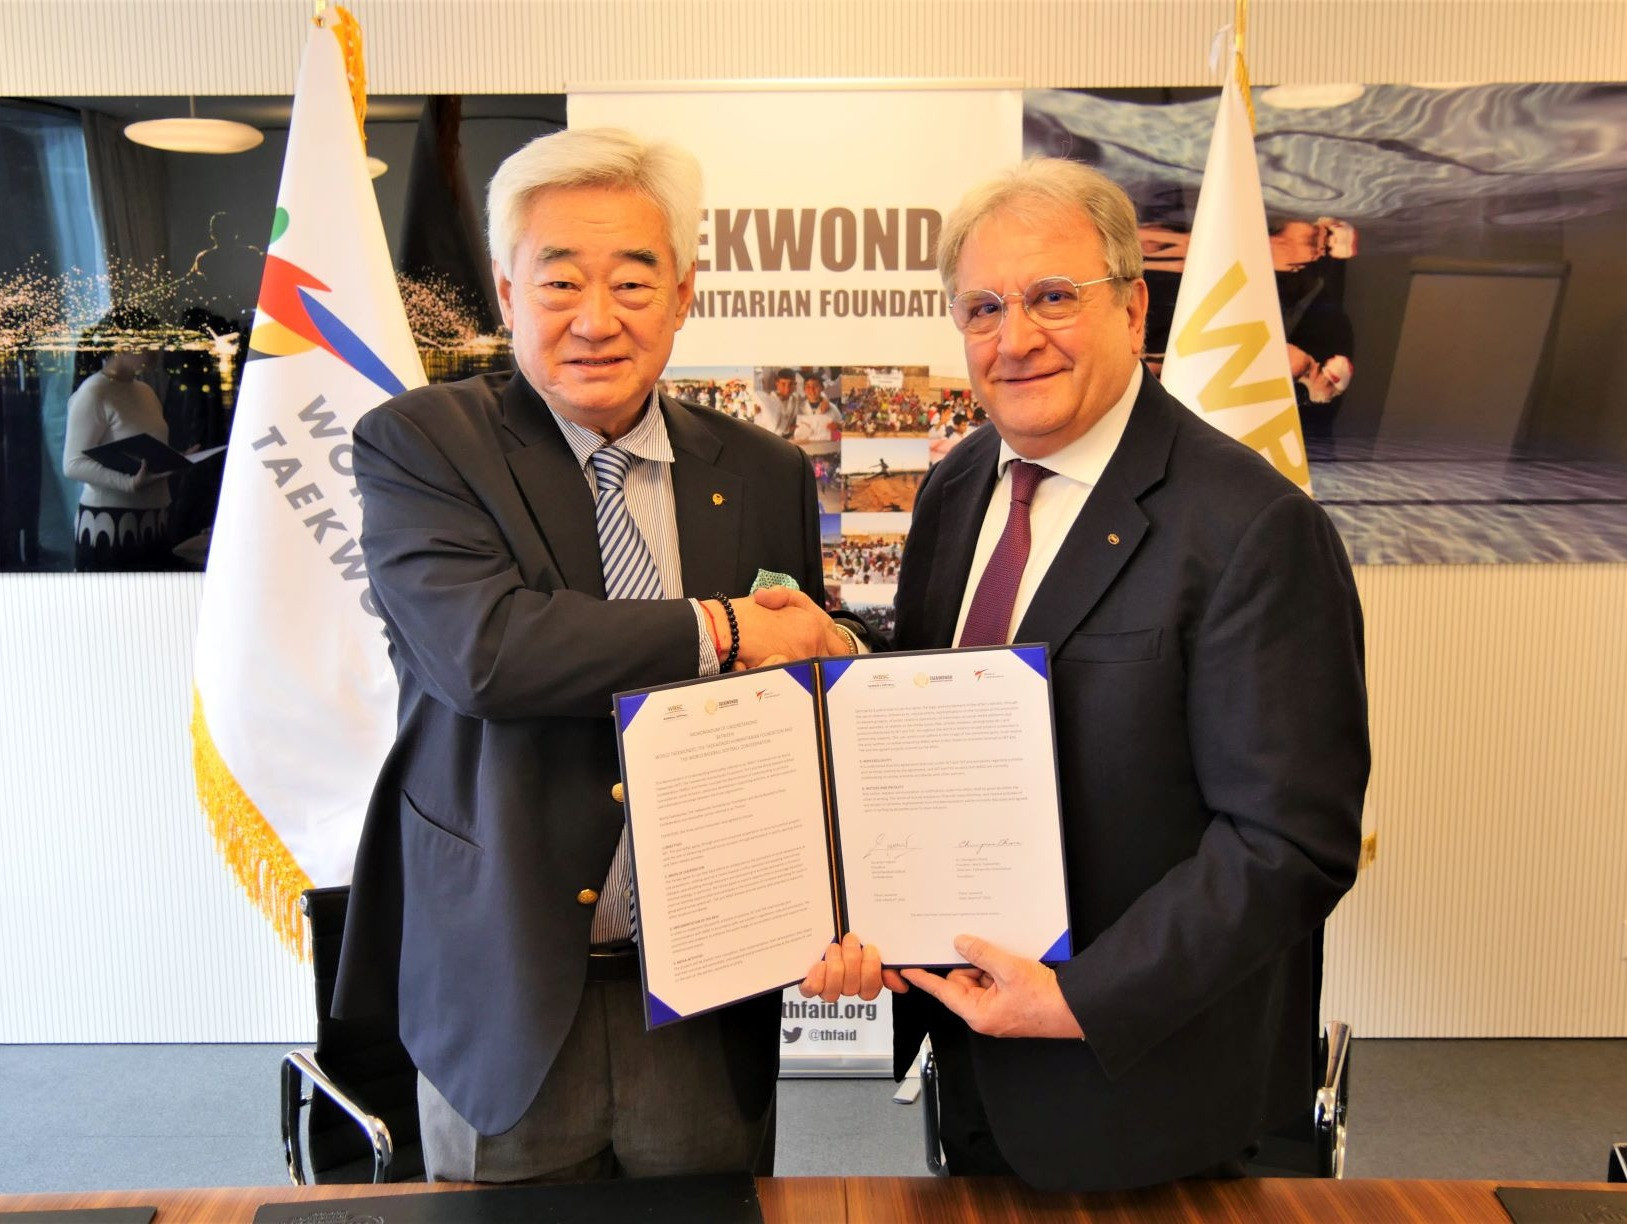 Taekwondo Humanitarian Foundation strikes deal with WBSC